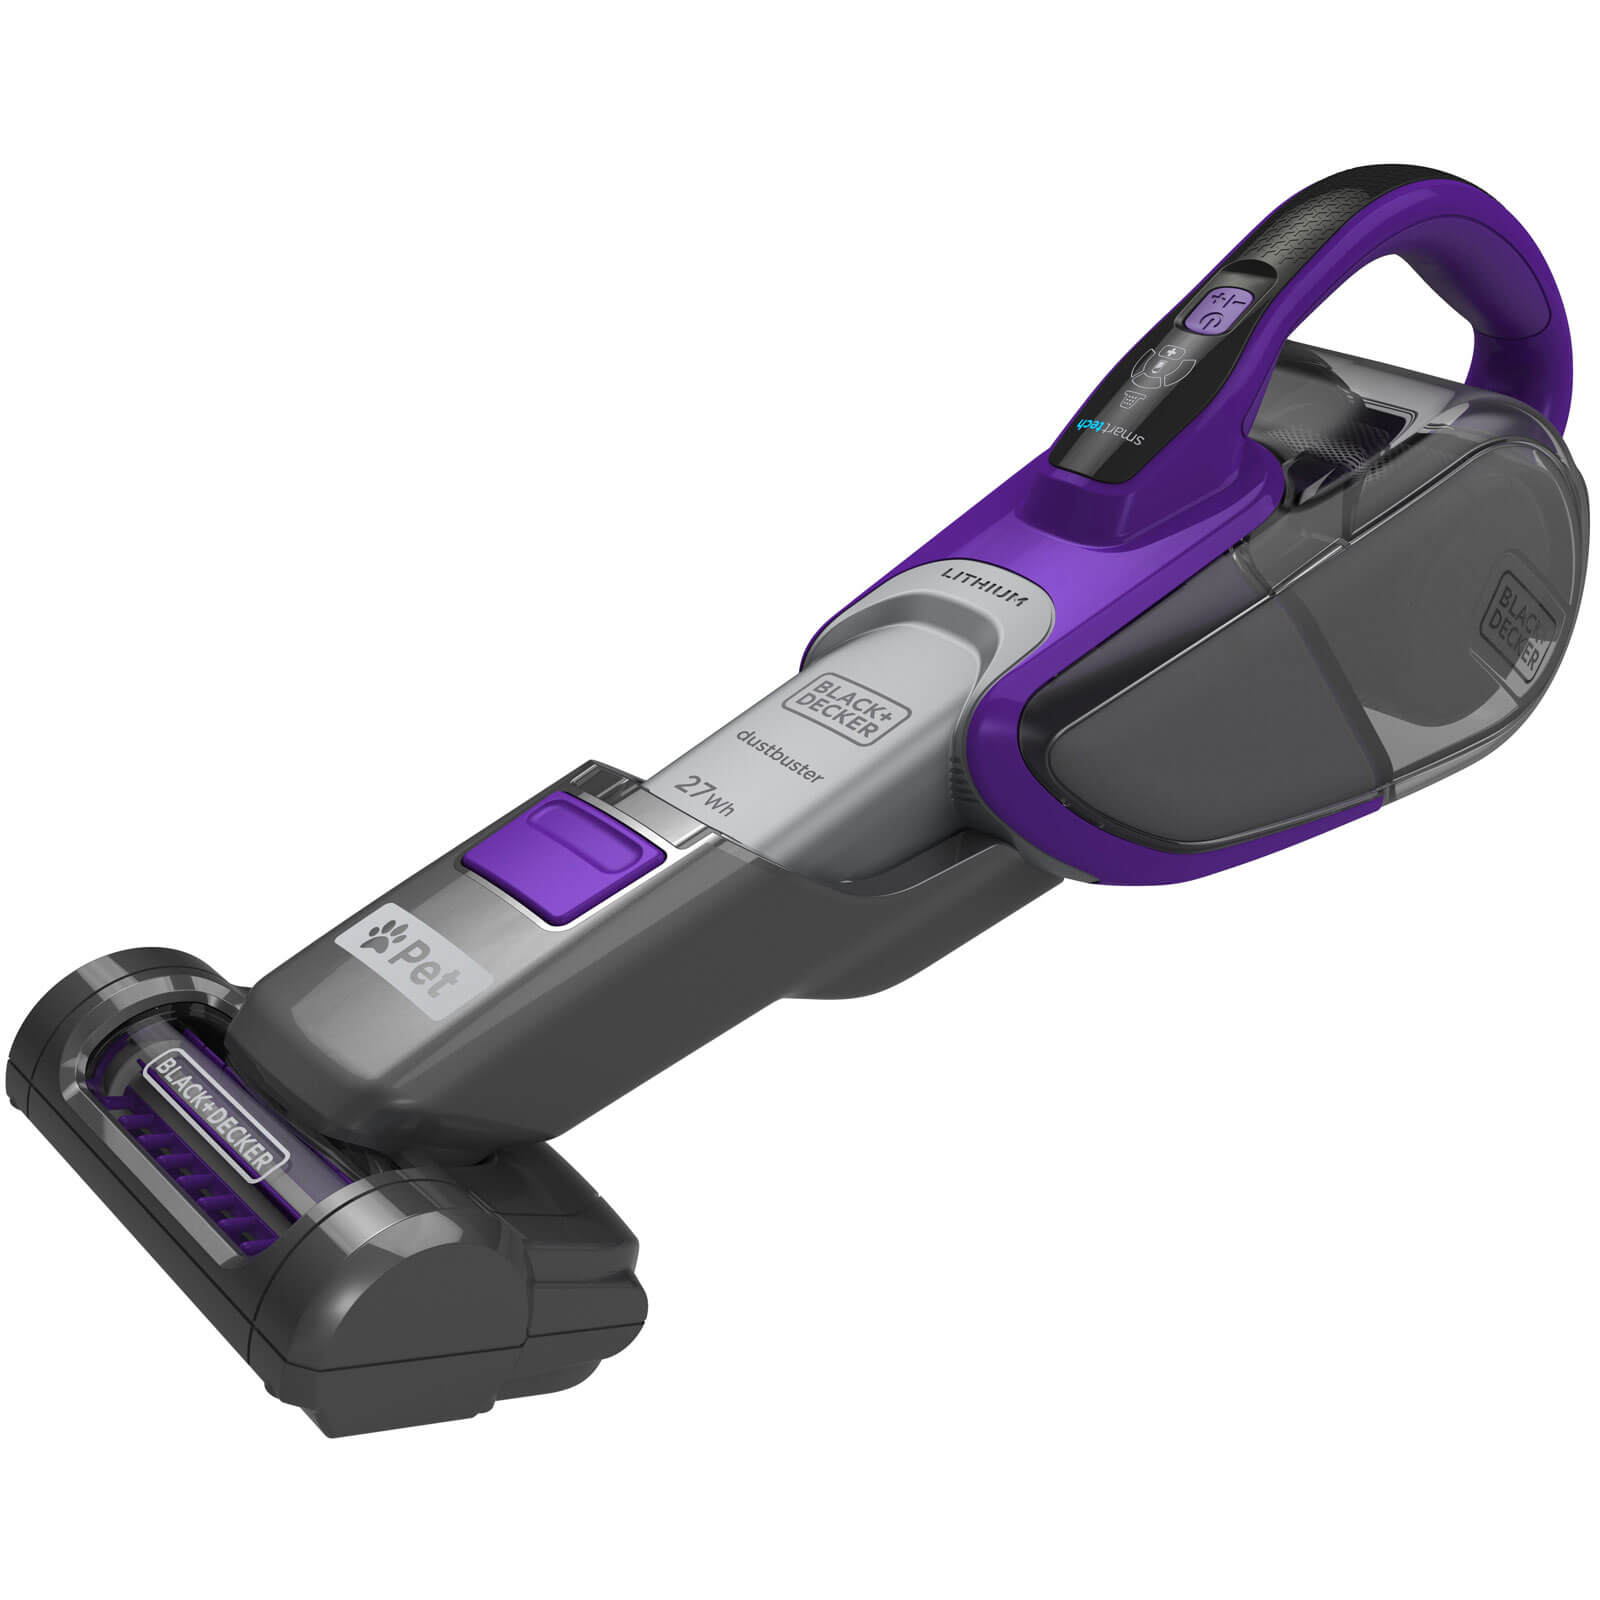 Black & Decker DVJ325BFSP 10.8v Cordless Digital PET Cyclonic Dustbuster 1 x 2.5ah Integrated Li-ion Charger No Case